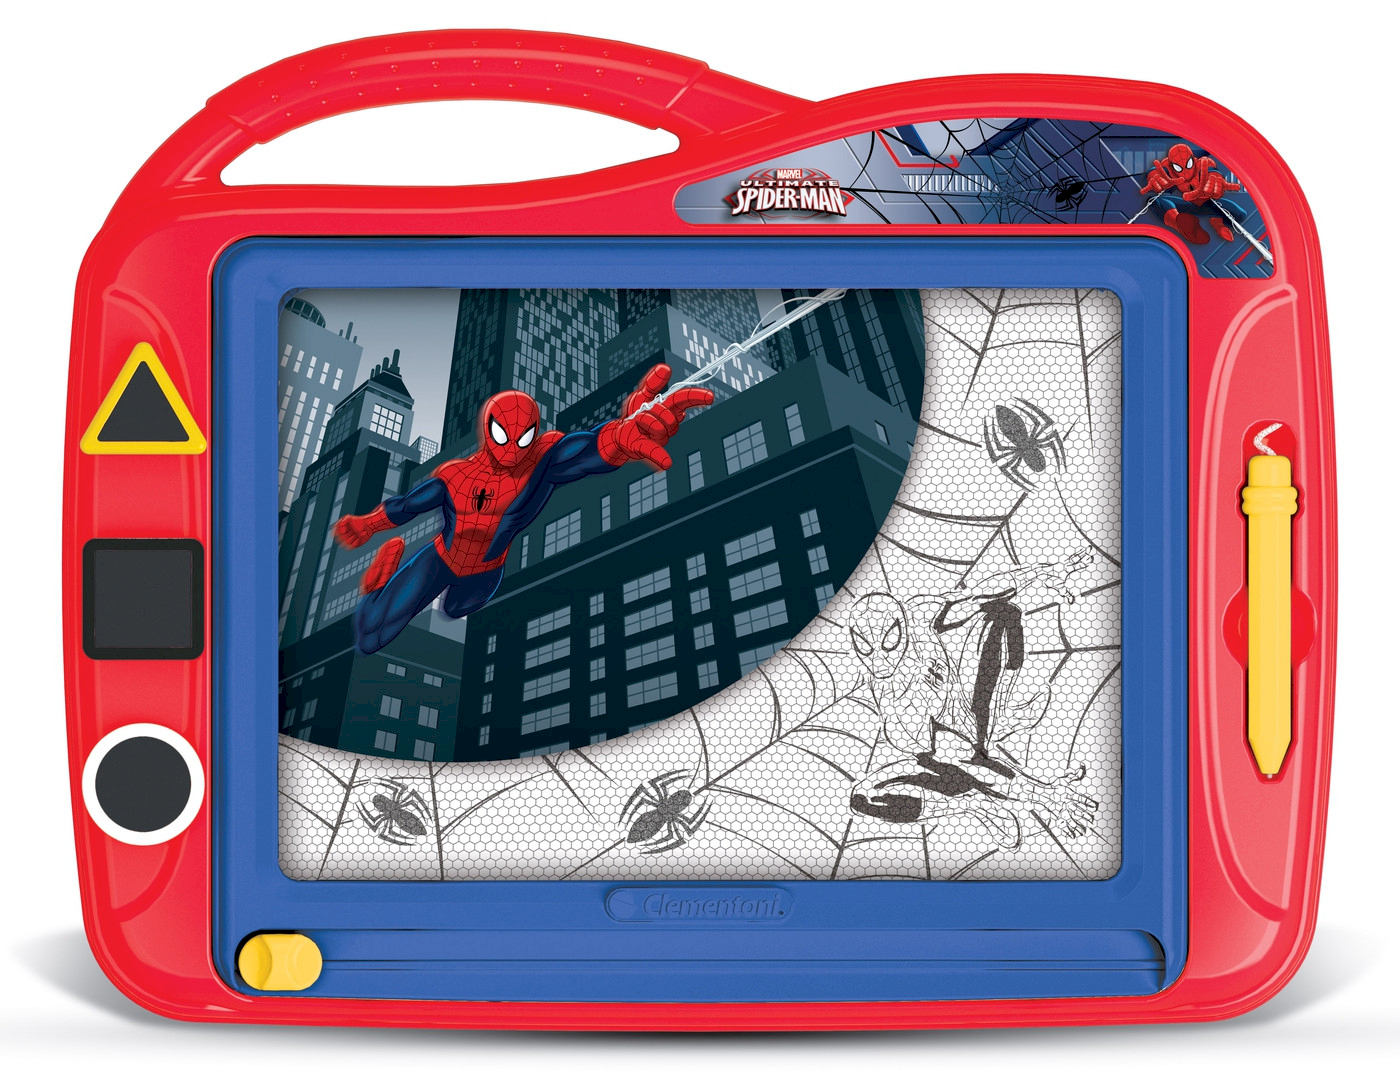 Tablette à dessins éducatifs Spiderman